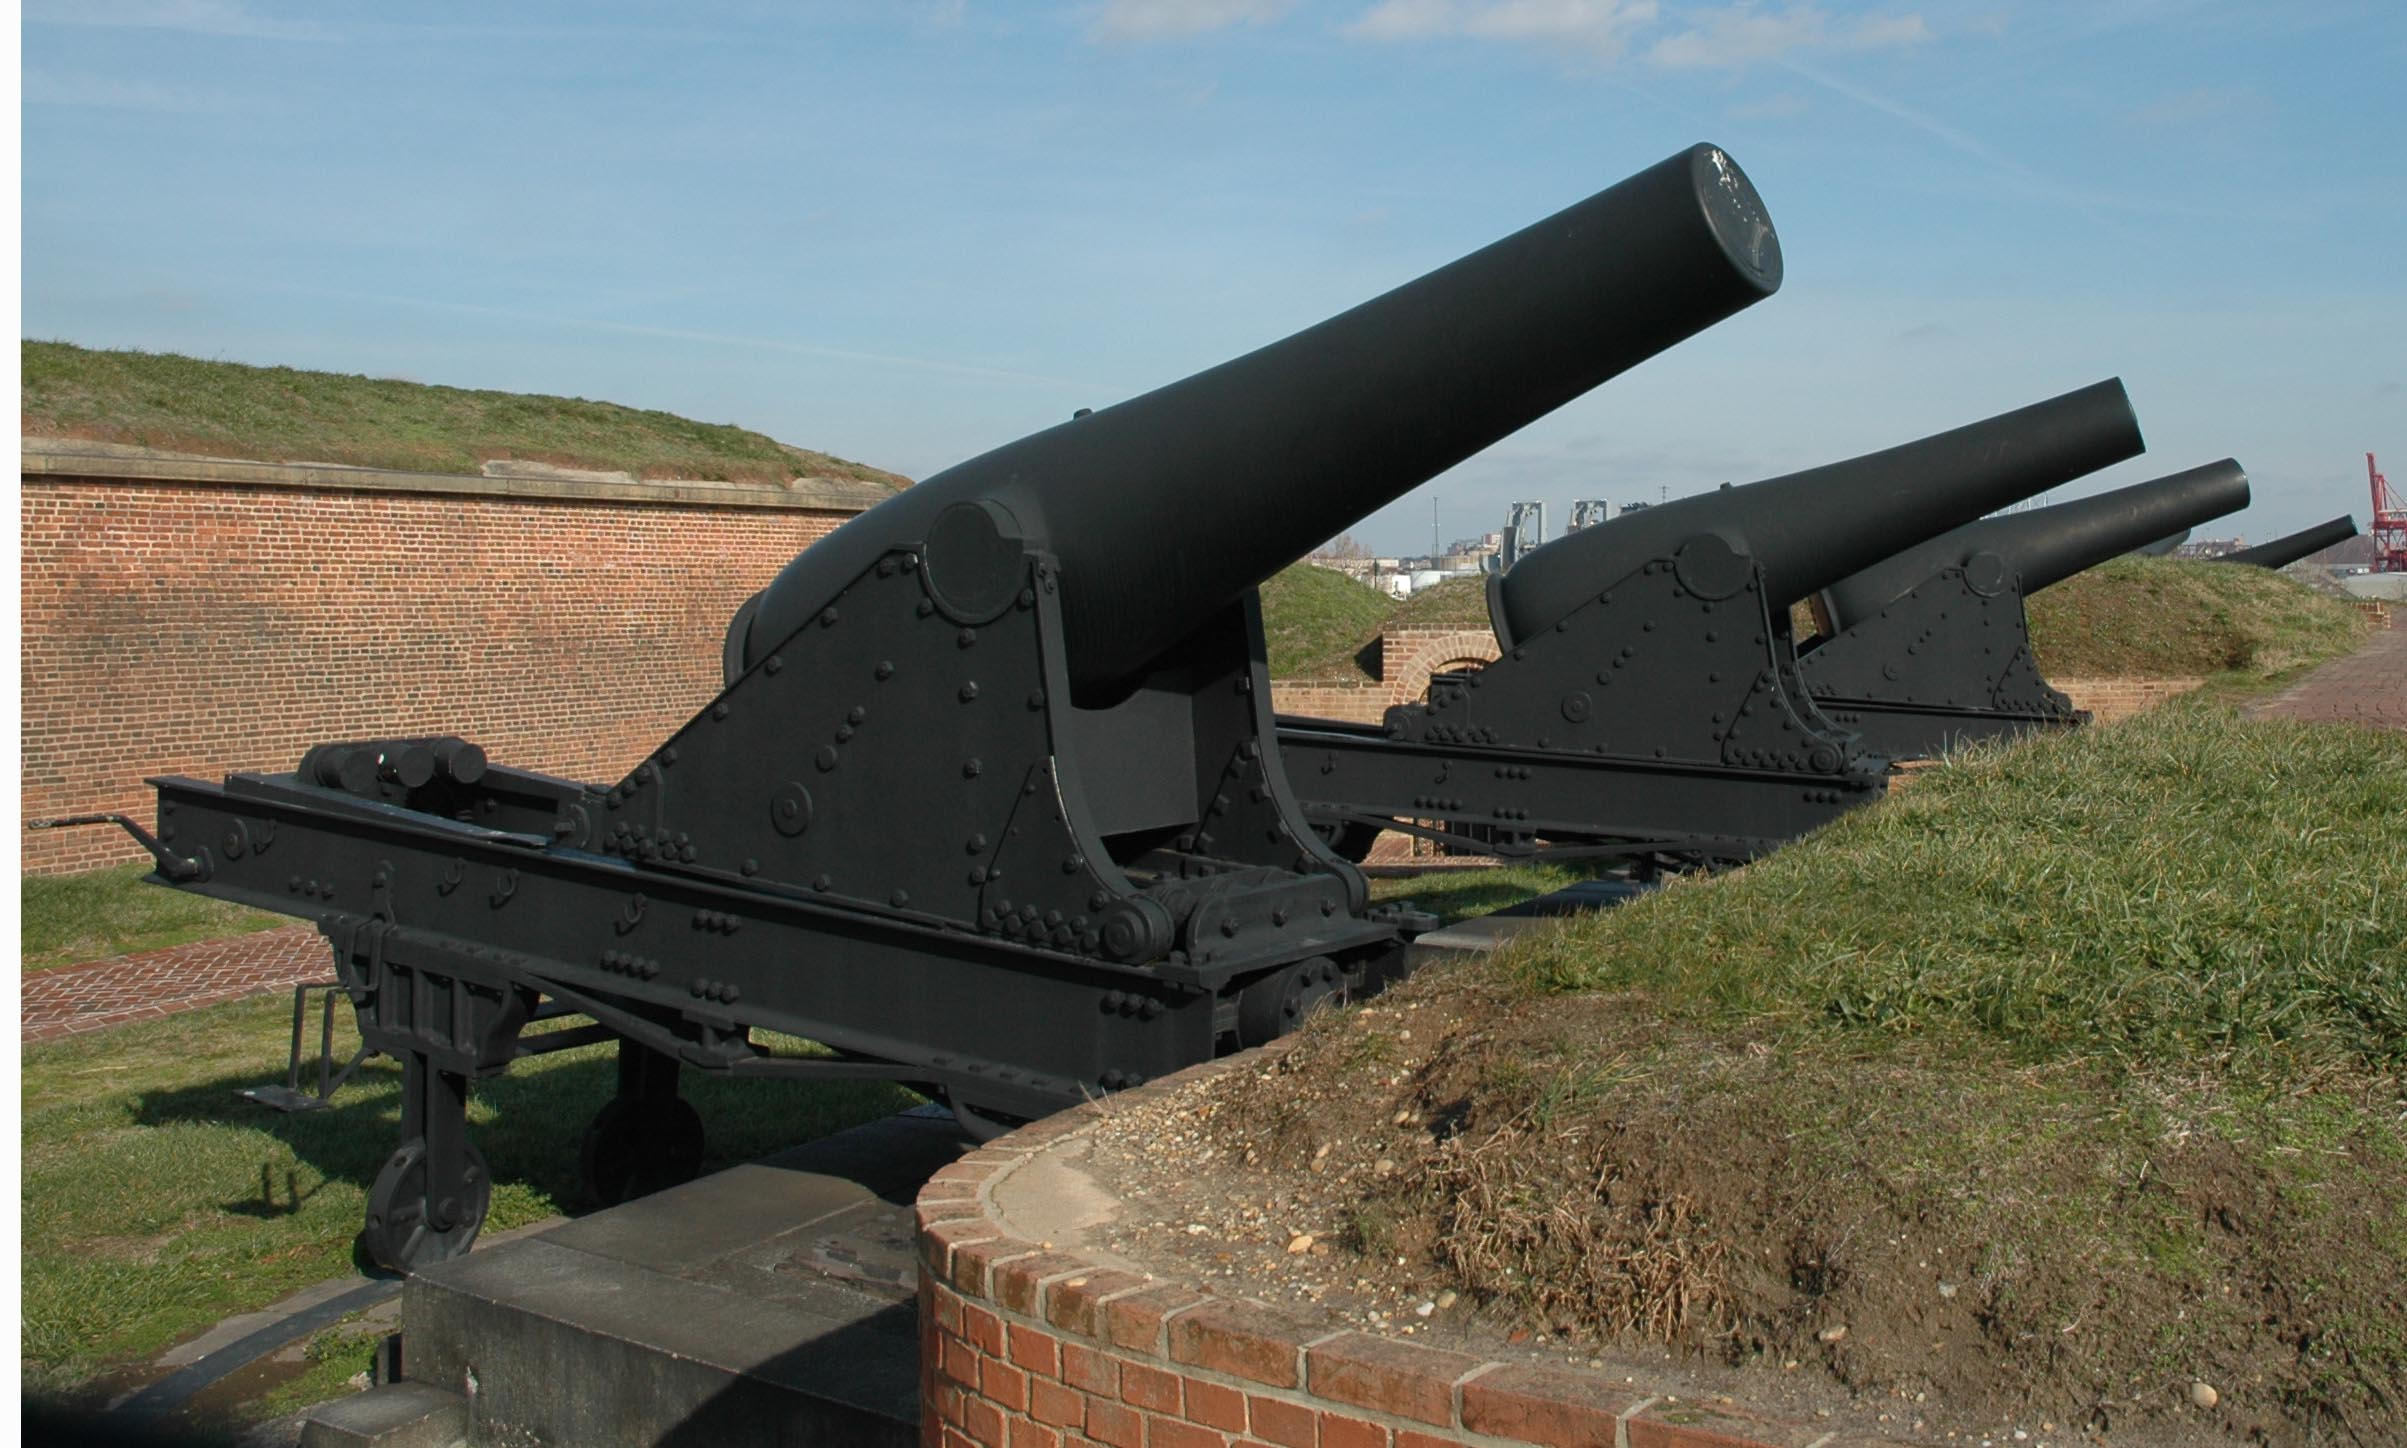 Rodman gun emplacement at Fort McHenry